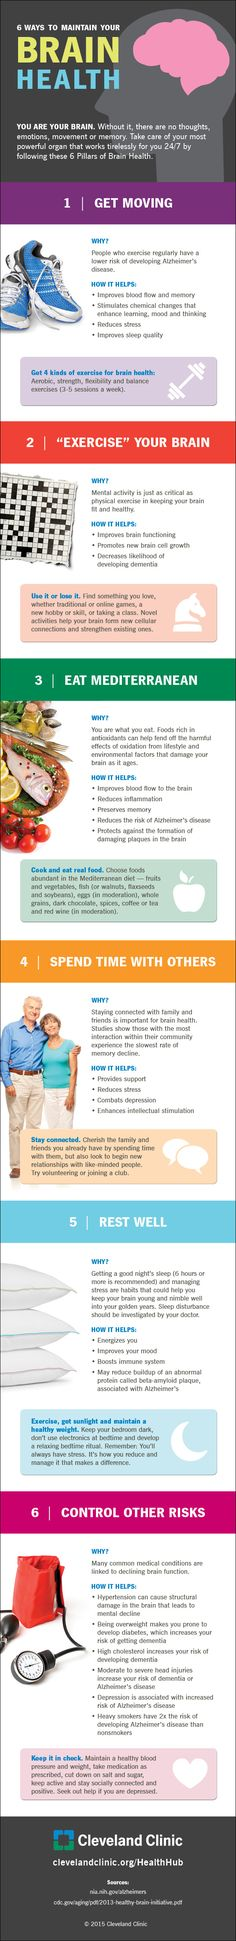 6 Ways to Maintain Your Brain Health (Infographic)